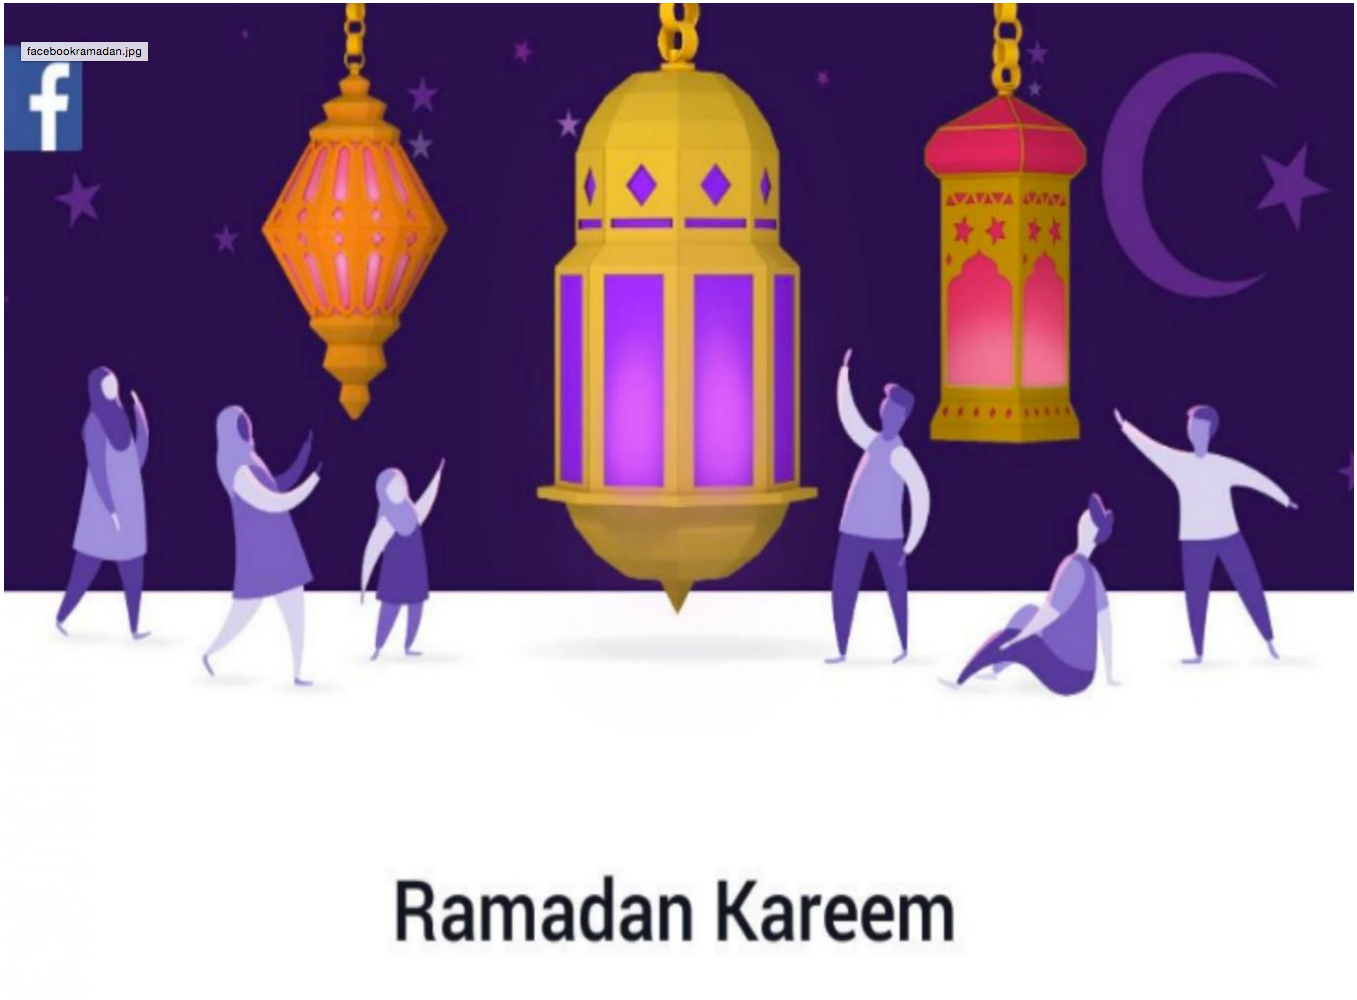 Facebook_s_Ramadan_greeting_spreads_dangerous_myths_about_Islam___Voices___The_Independent